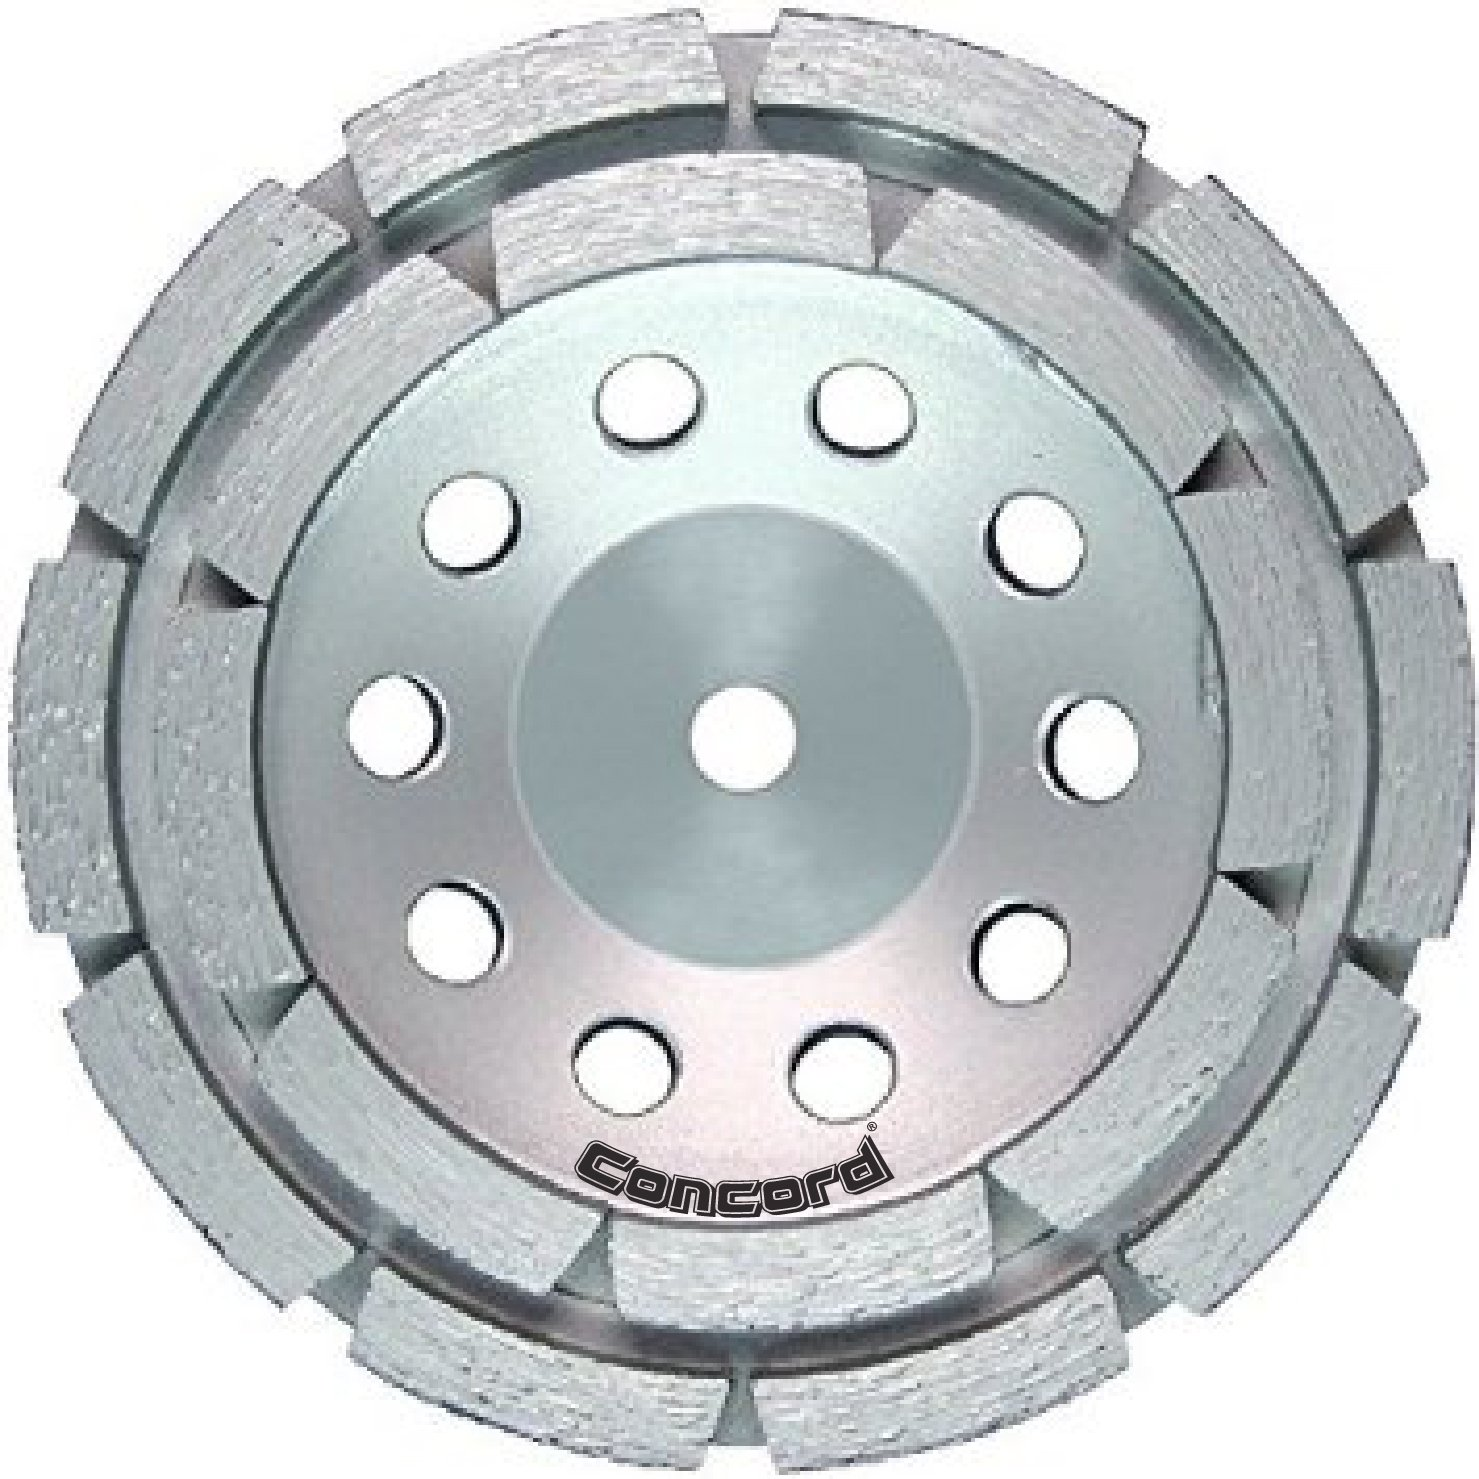 Concord Blades GCD050FCP 5 Inch Double Row Diamond Cup Wheel with 5/8''-11 Thread by Concord Blades